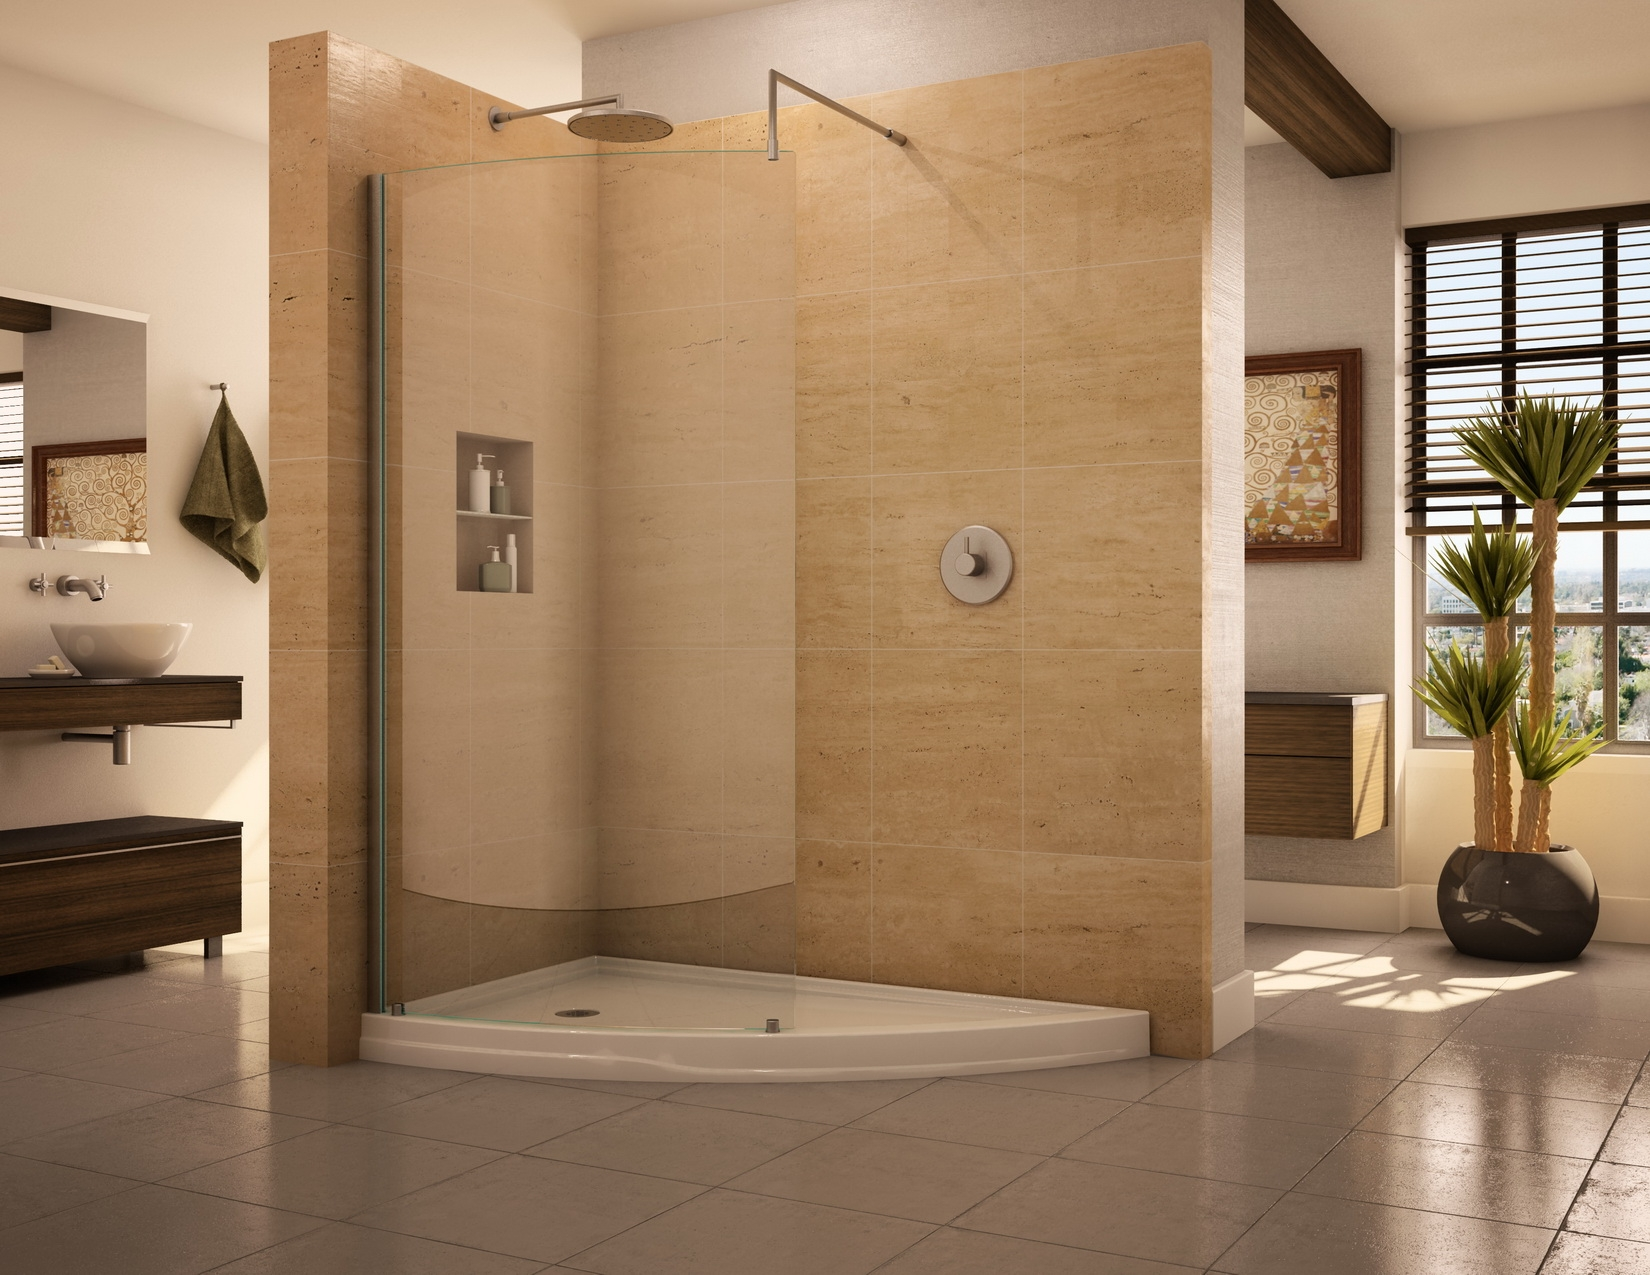 Use Similar But Slightly Diffe Materials For The Shower